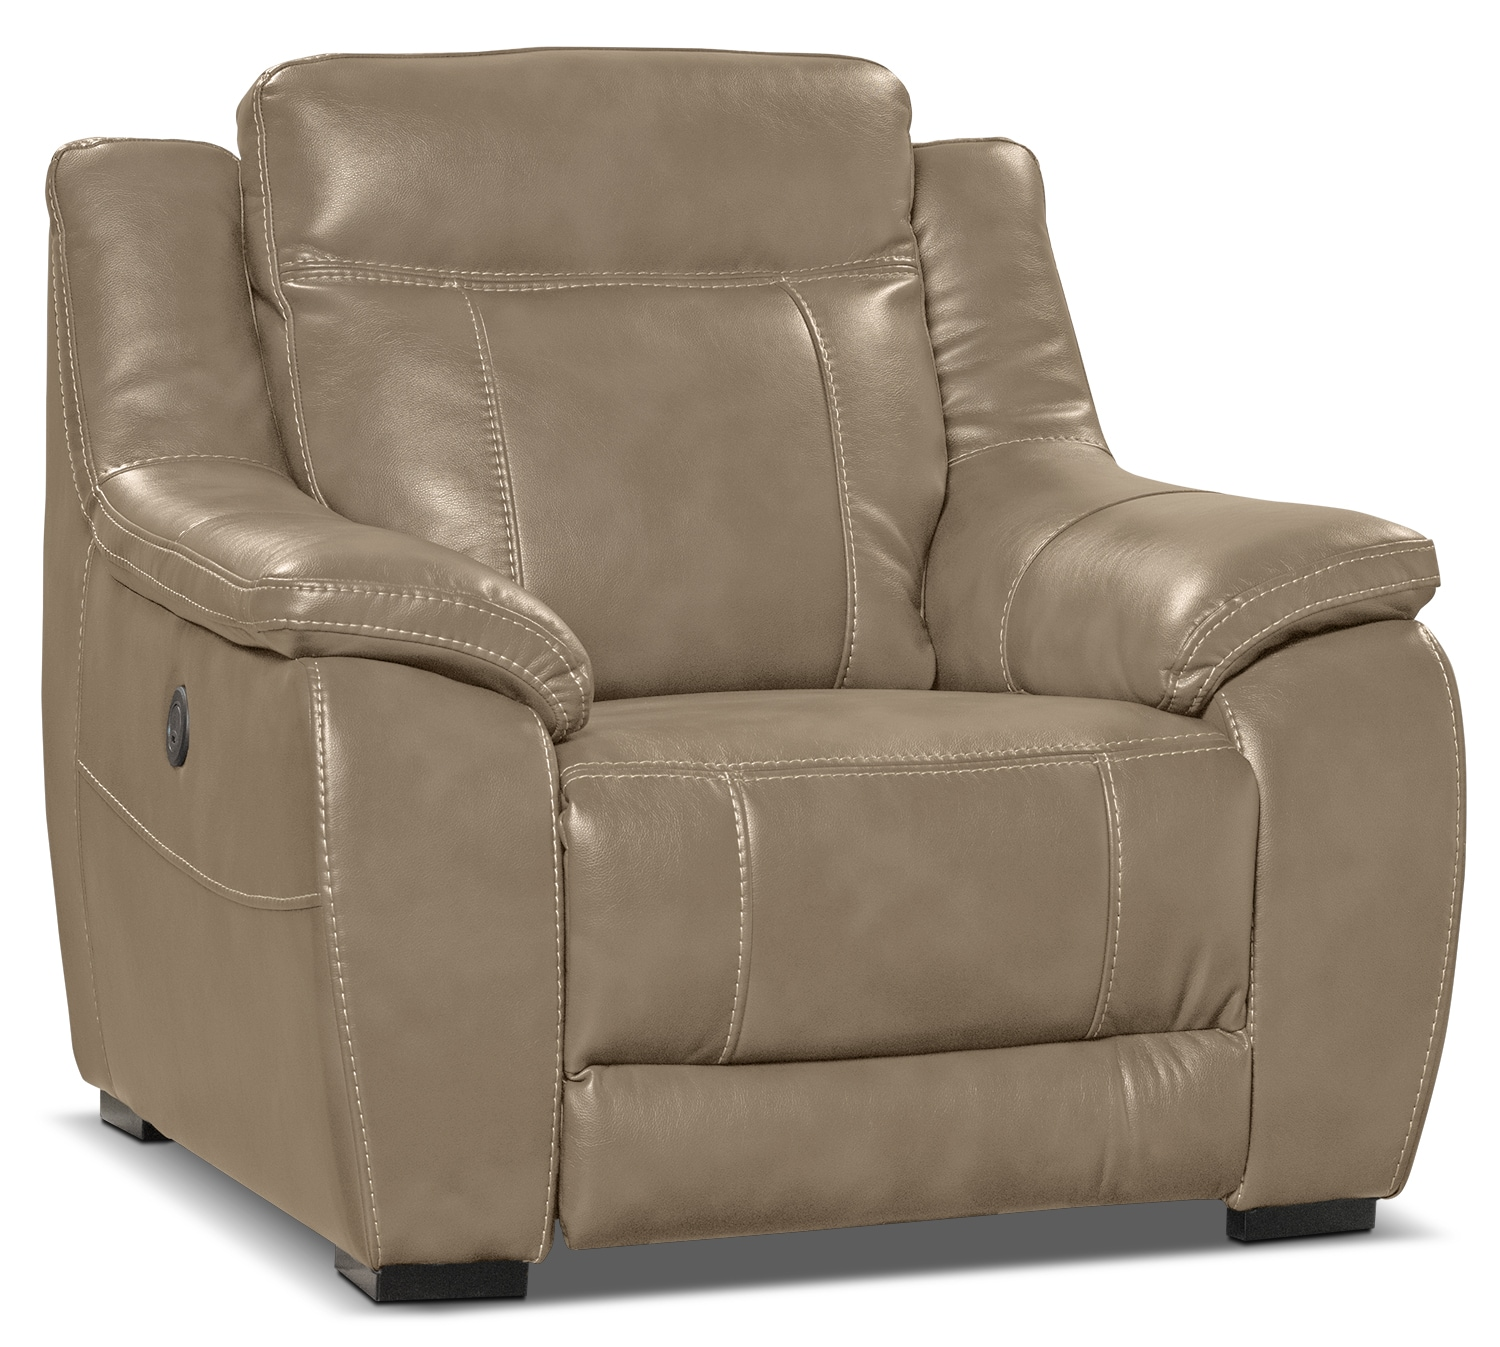 Living Room Furniture - Novo Leather-Look Fabric Power Reclining Chair – Taupe